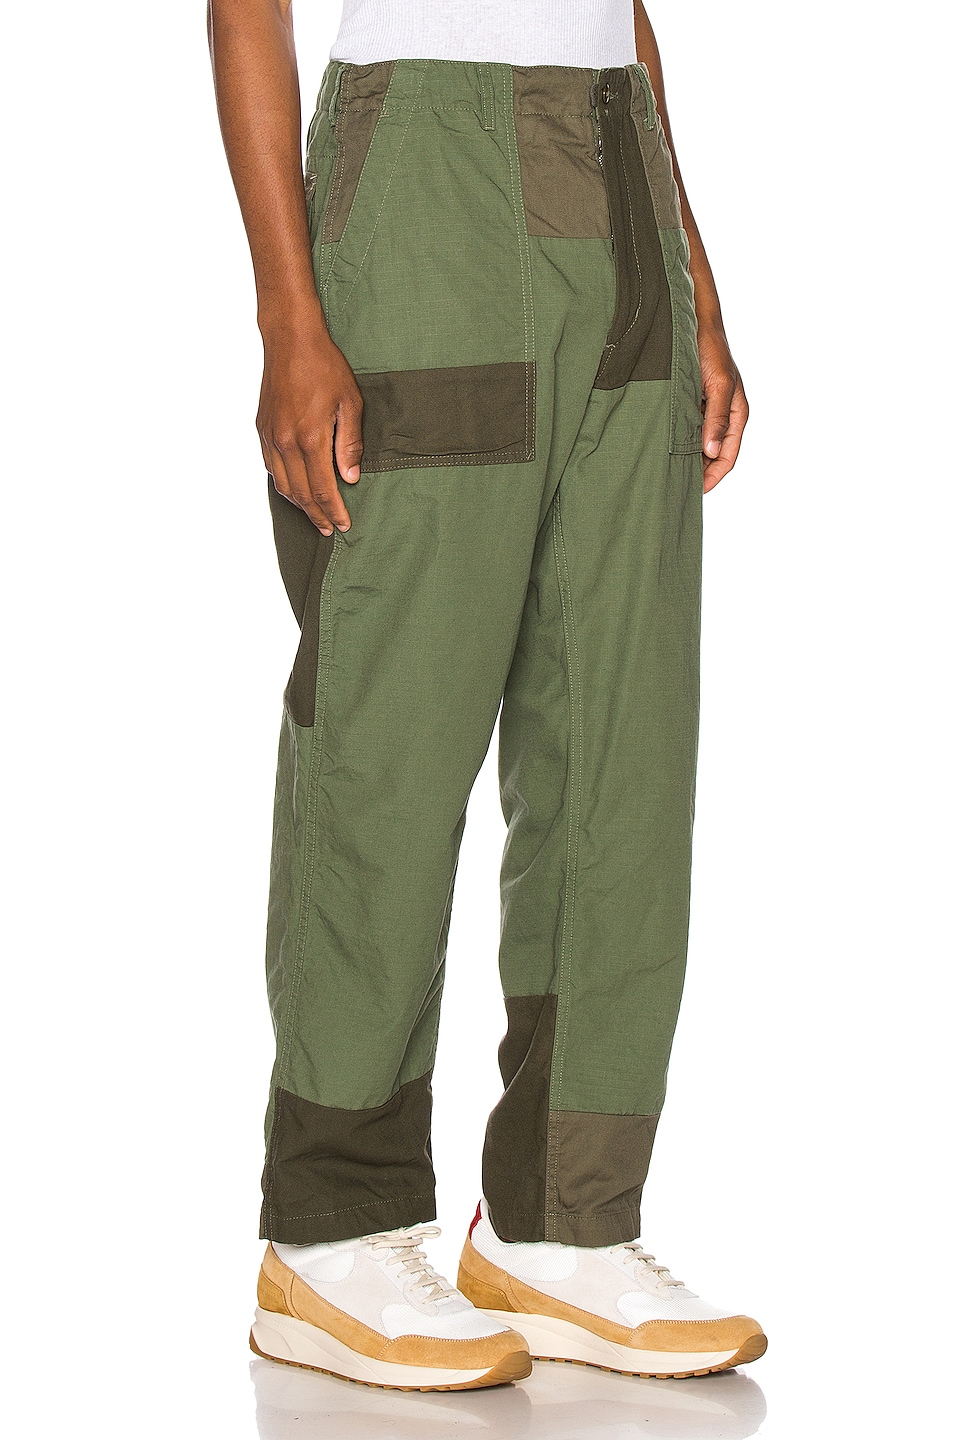 Image 2 of Engineered Garments Fatigue Pant Cotton Ripstop in Olive